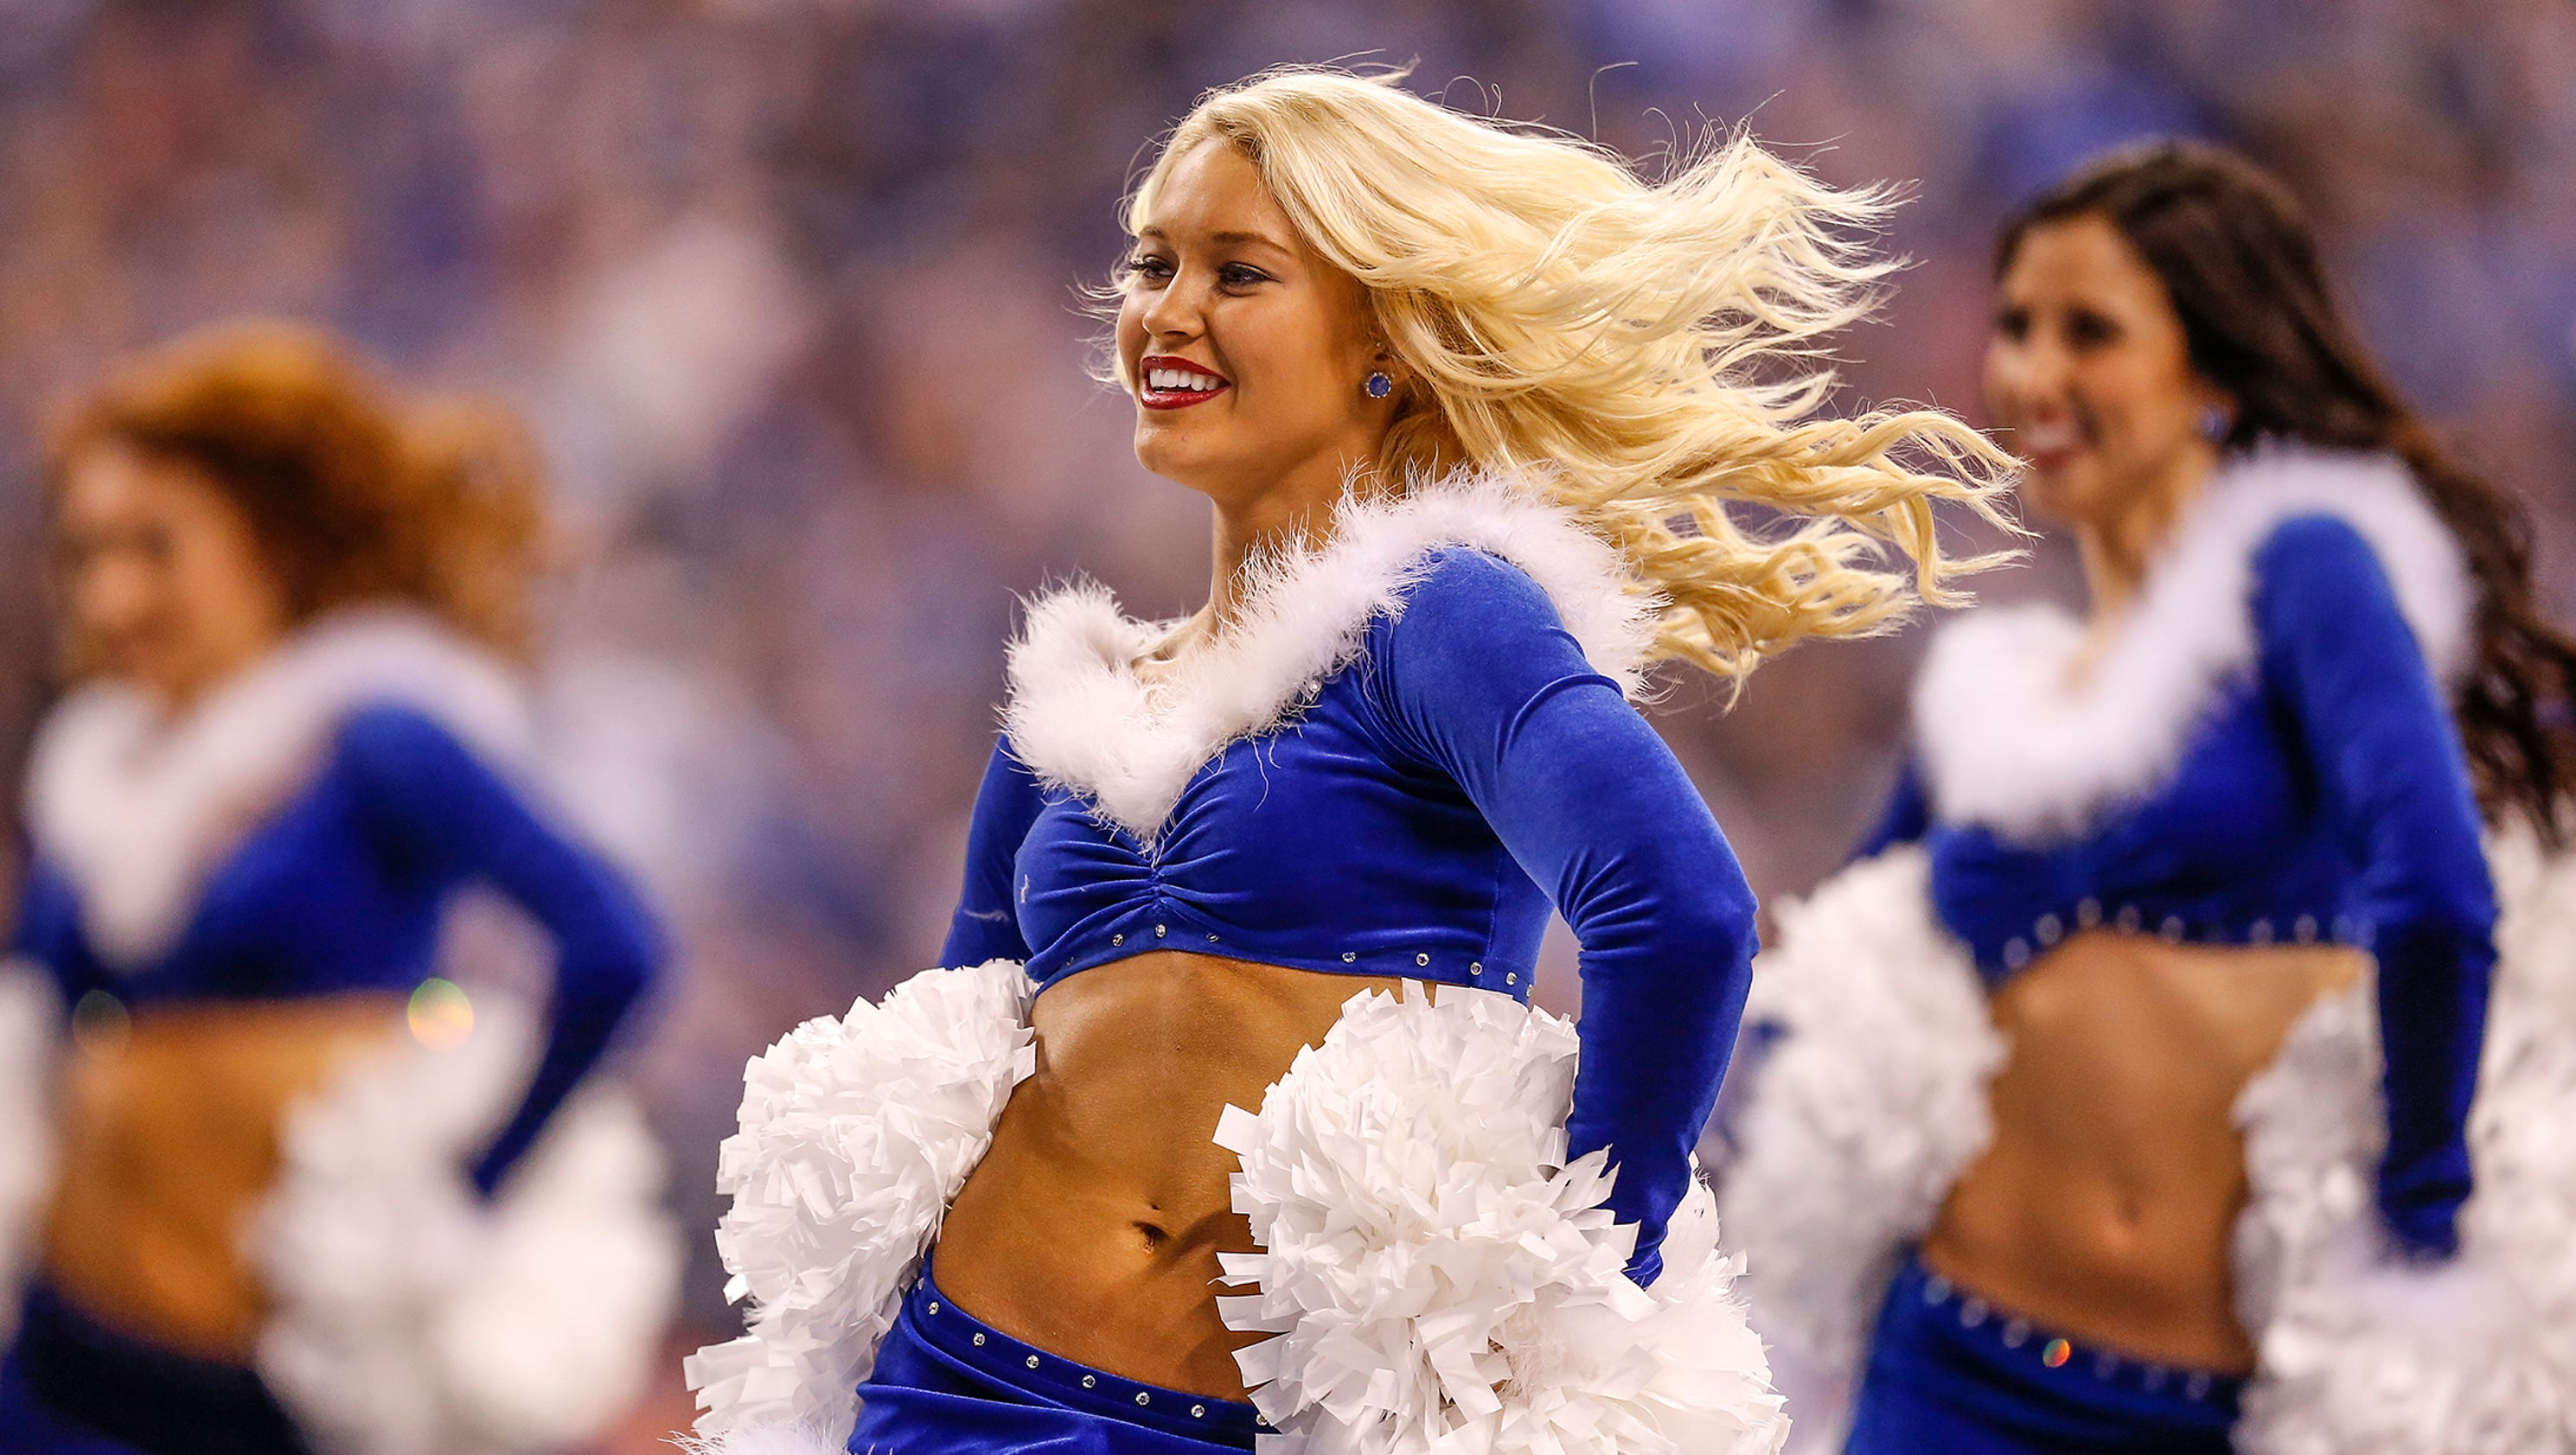 Colts Cheerleaders Show Holiday Spirit